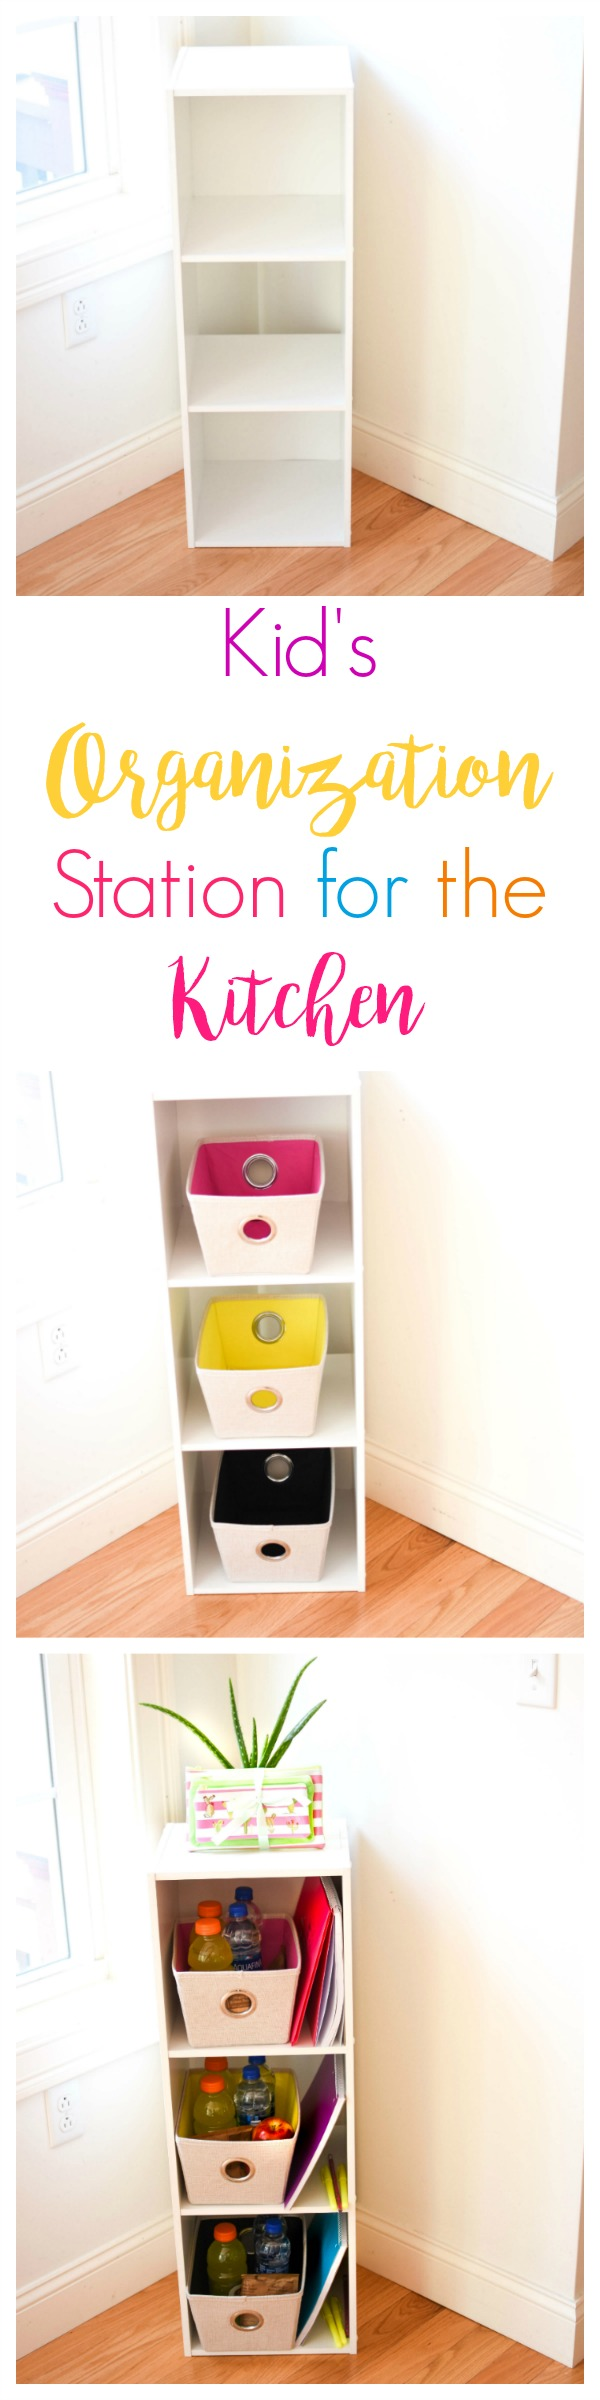 DIY Kitchen Organization Station For Kids- Every house needs an organizational station in the kitchen. Add your child's snacks, homework, or place important things for the next day on each level!